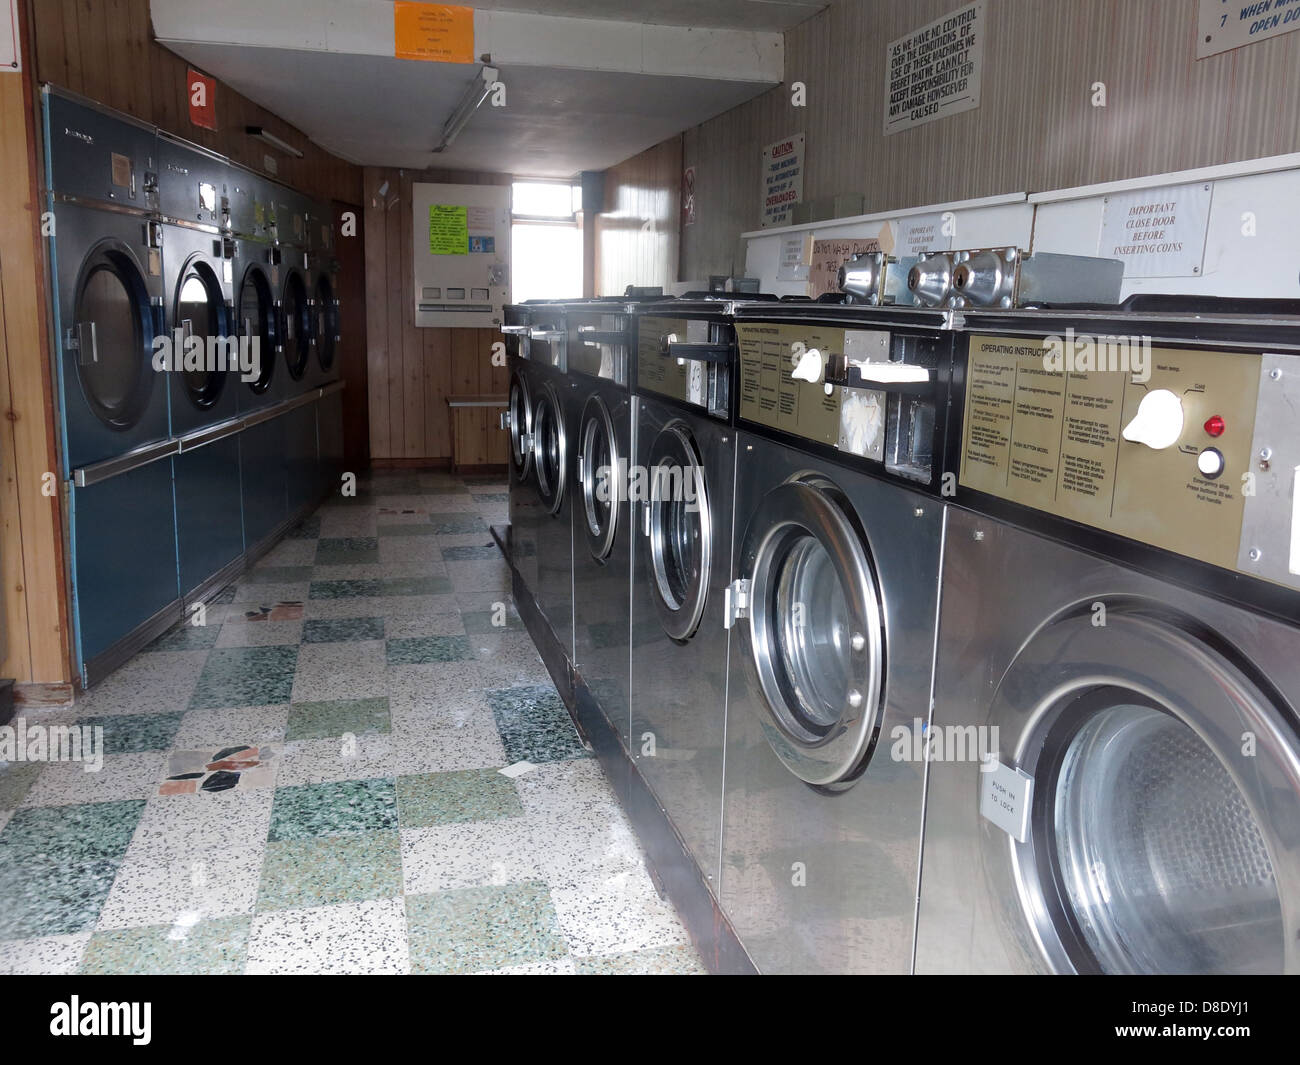 washing,drying,dryers,machine,dolly,tub,dollytub,the,old,service,washes,threatened,treatened,under,threat,undertreat,tradition,high,st,street,closed,closing,disappearing,disappear,Warrington,Grappenhall,Penketh,shops,parade,of,dry,clean,centre,coin,op,coinop,coin-op,in,the,slot,gotonysmith,coin,operated,Bendix,Whirlpool,Kenmore,Miele,Bosch,AEG,Hotpoint,Ariston,Beko,Creda,Dyson,Electrolux,&,Fisher,and,Paykel,Hoover,Hitachi,Indesit,Roper,Staber,Siemens,Zanussi,Buy Pictures of,Buy Images Of